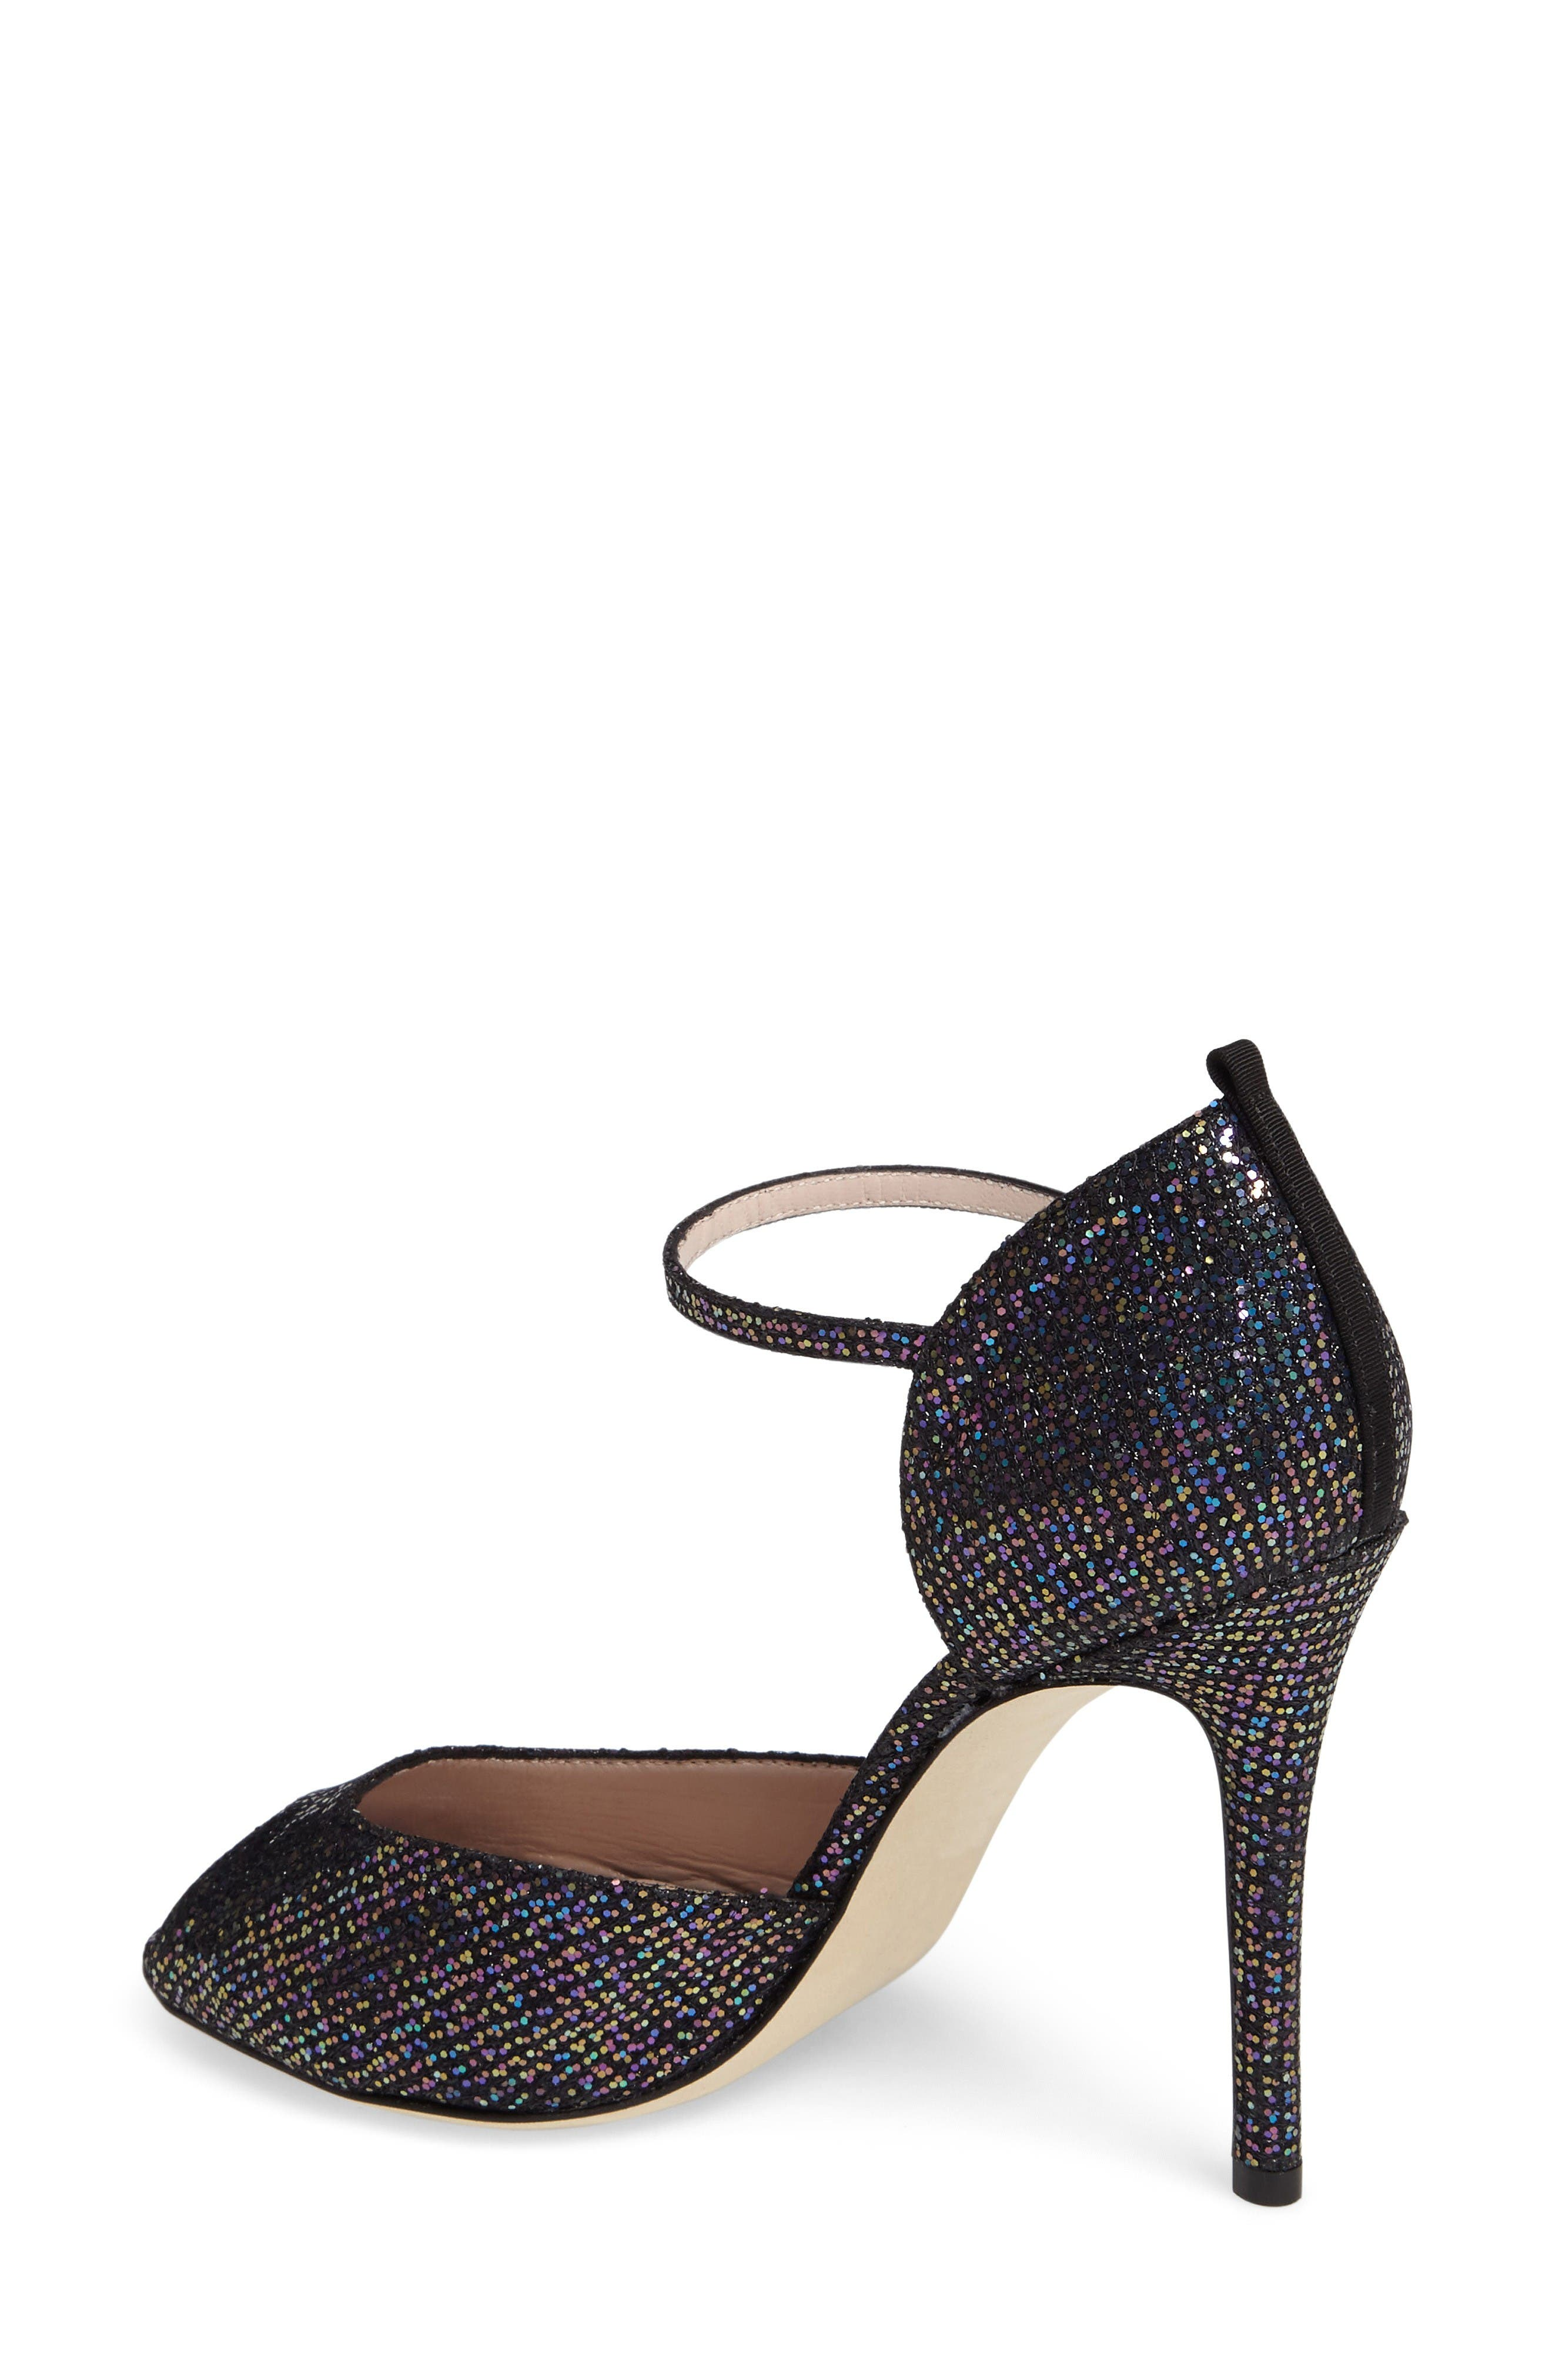 Alternate Image 2  - SJP by Sarah Jessica Parker by Sarah Jessica Parker 'Ursula' Open Toe d'Orsay Metallic Leather Pump